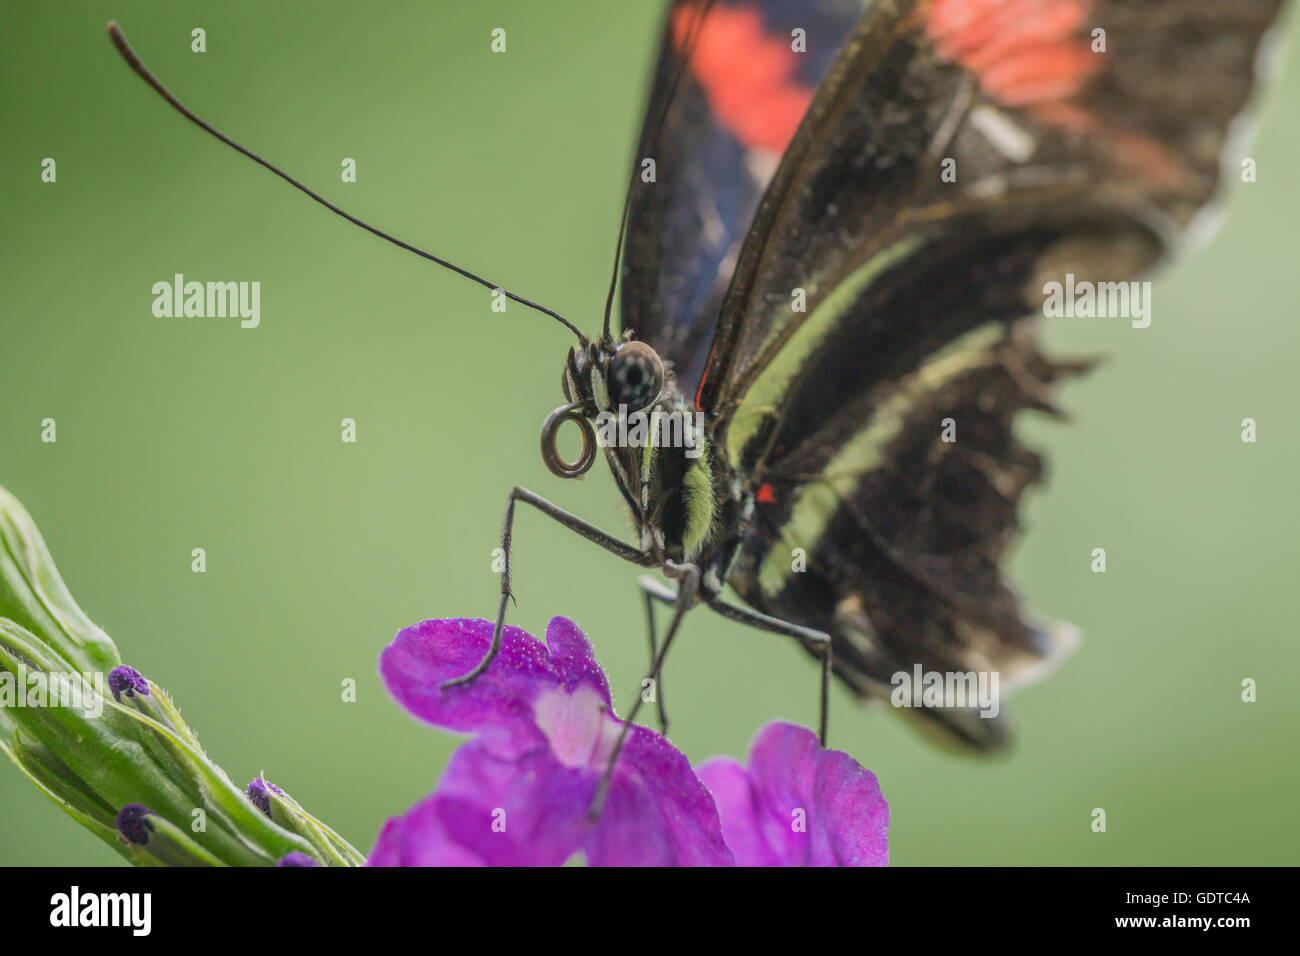 A butterfly shows its proboscis before feeding - Stock Image